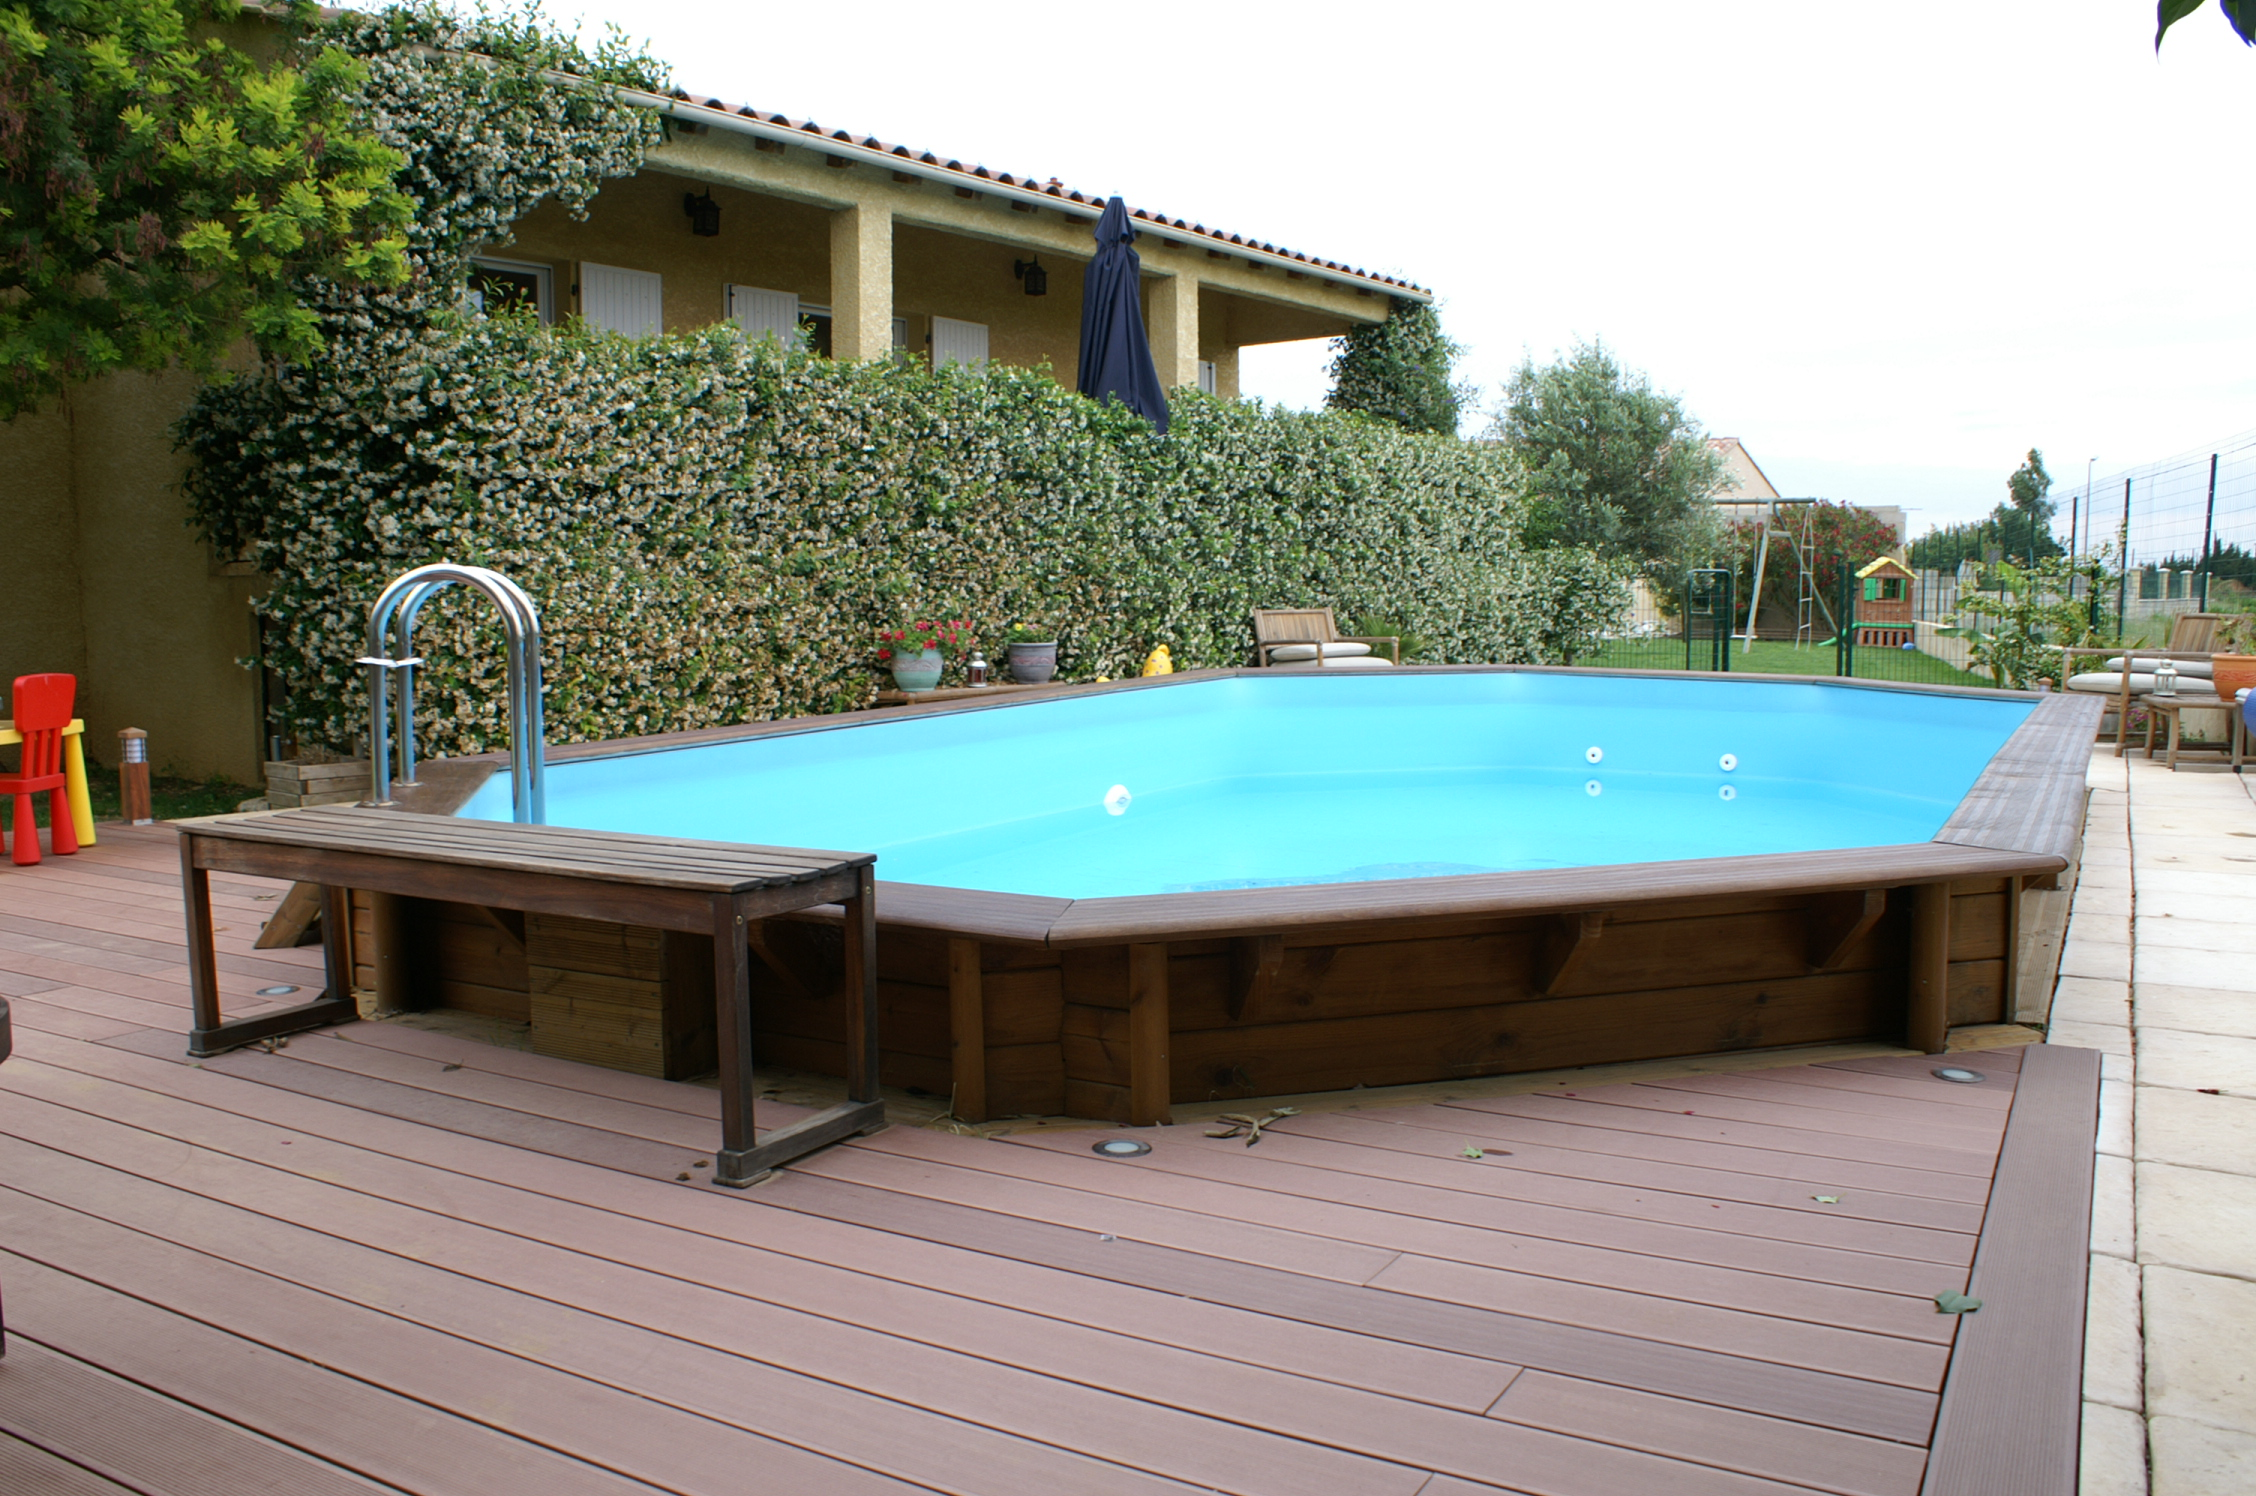 Construction piscines nimes gepad piscines et spa 30000 for Piscine a debordement en kit